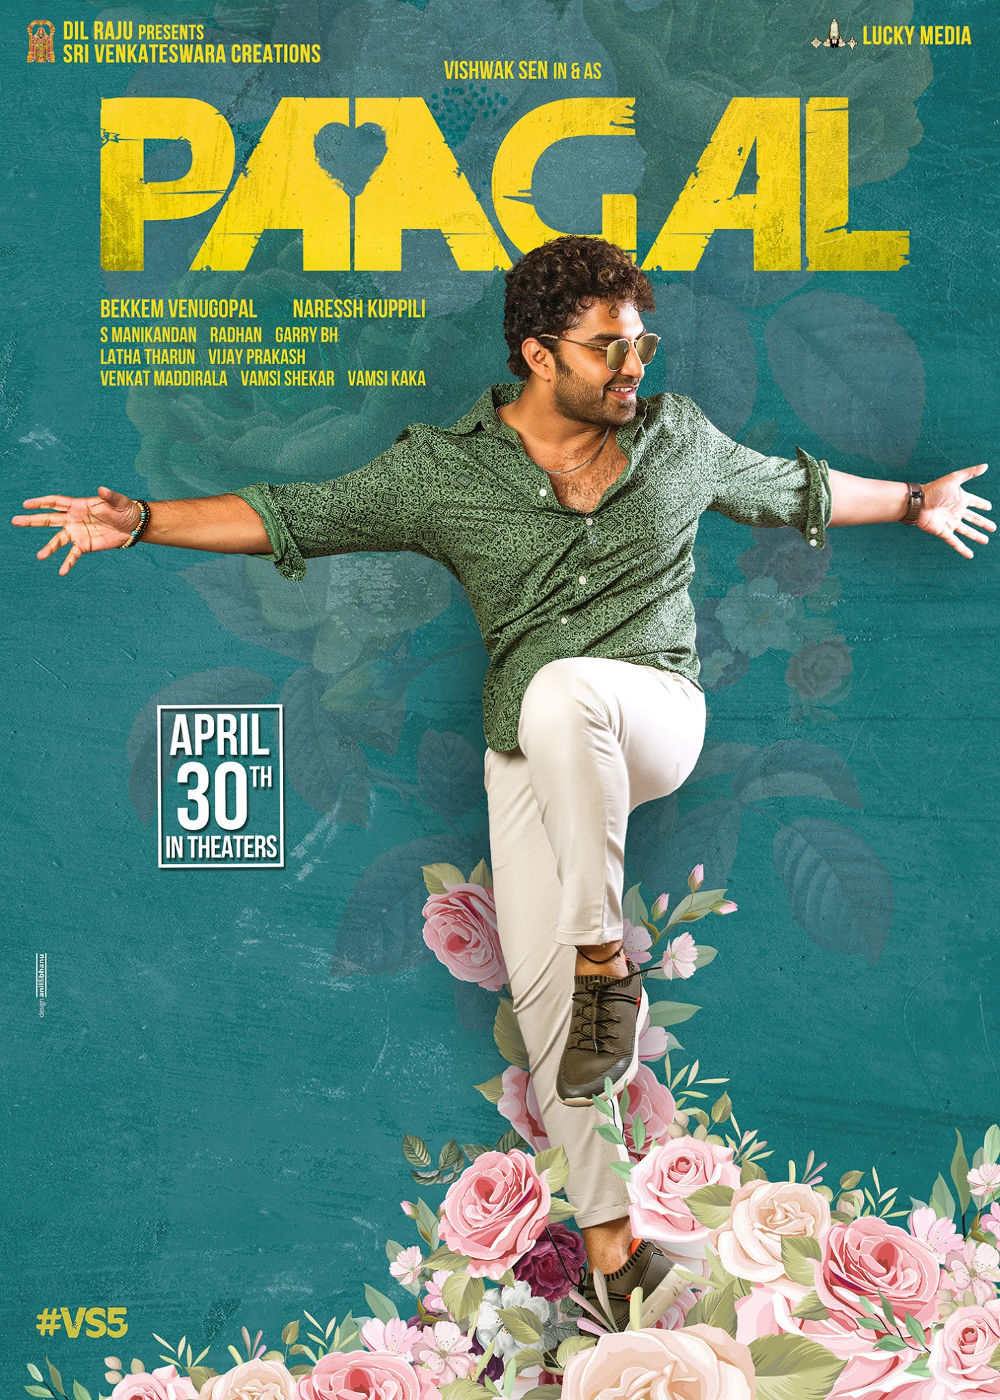 Vishwak Sen Paagal First Look Out Film To Release On April 30